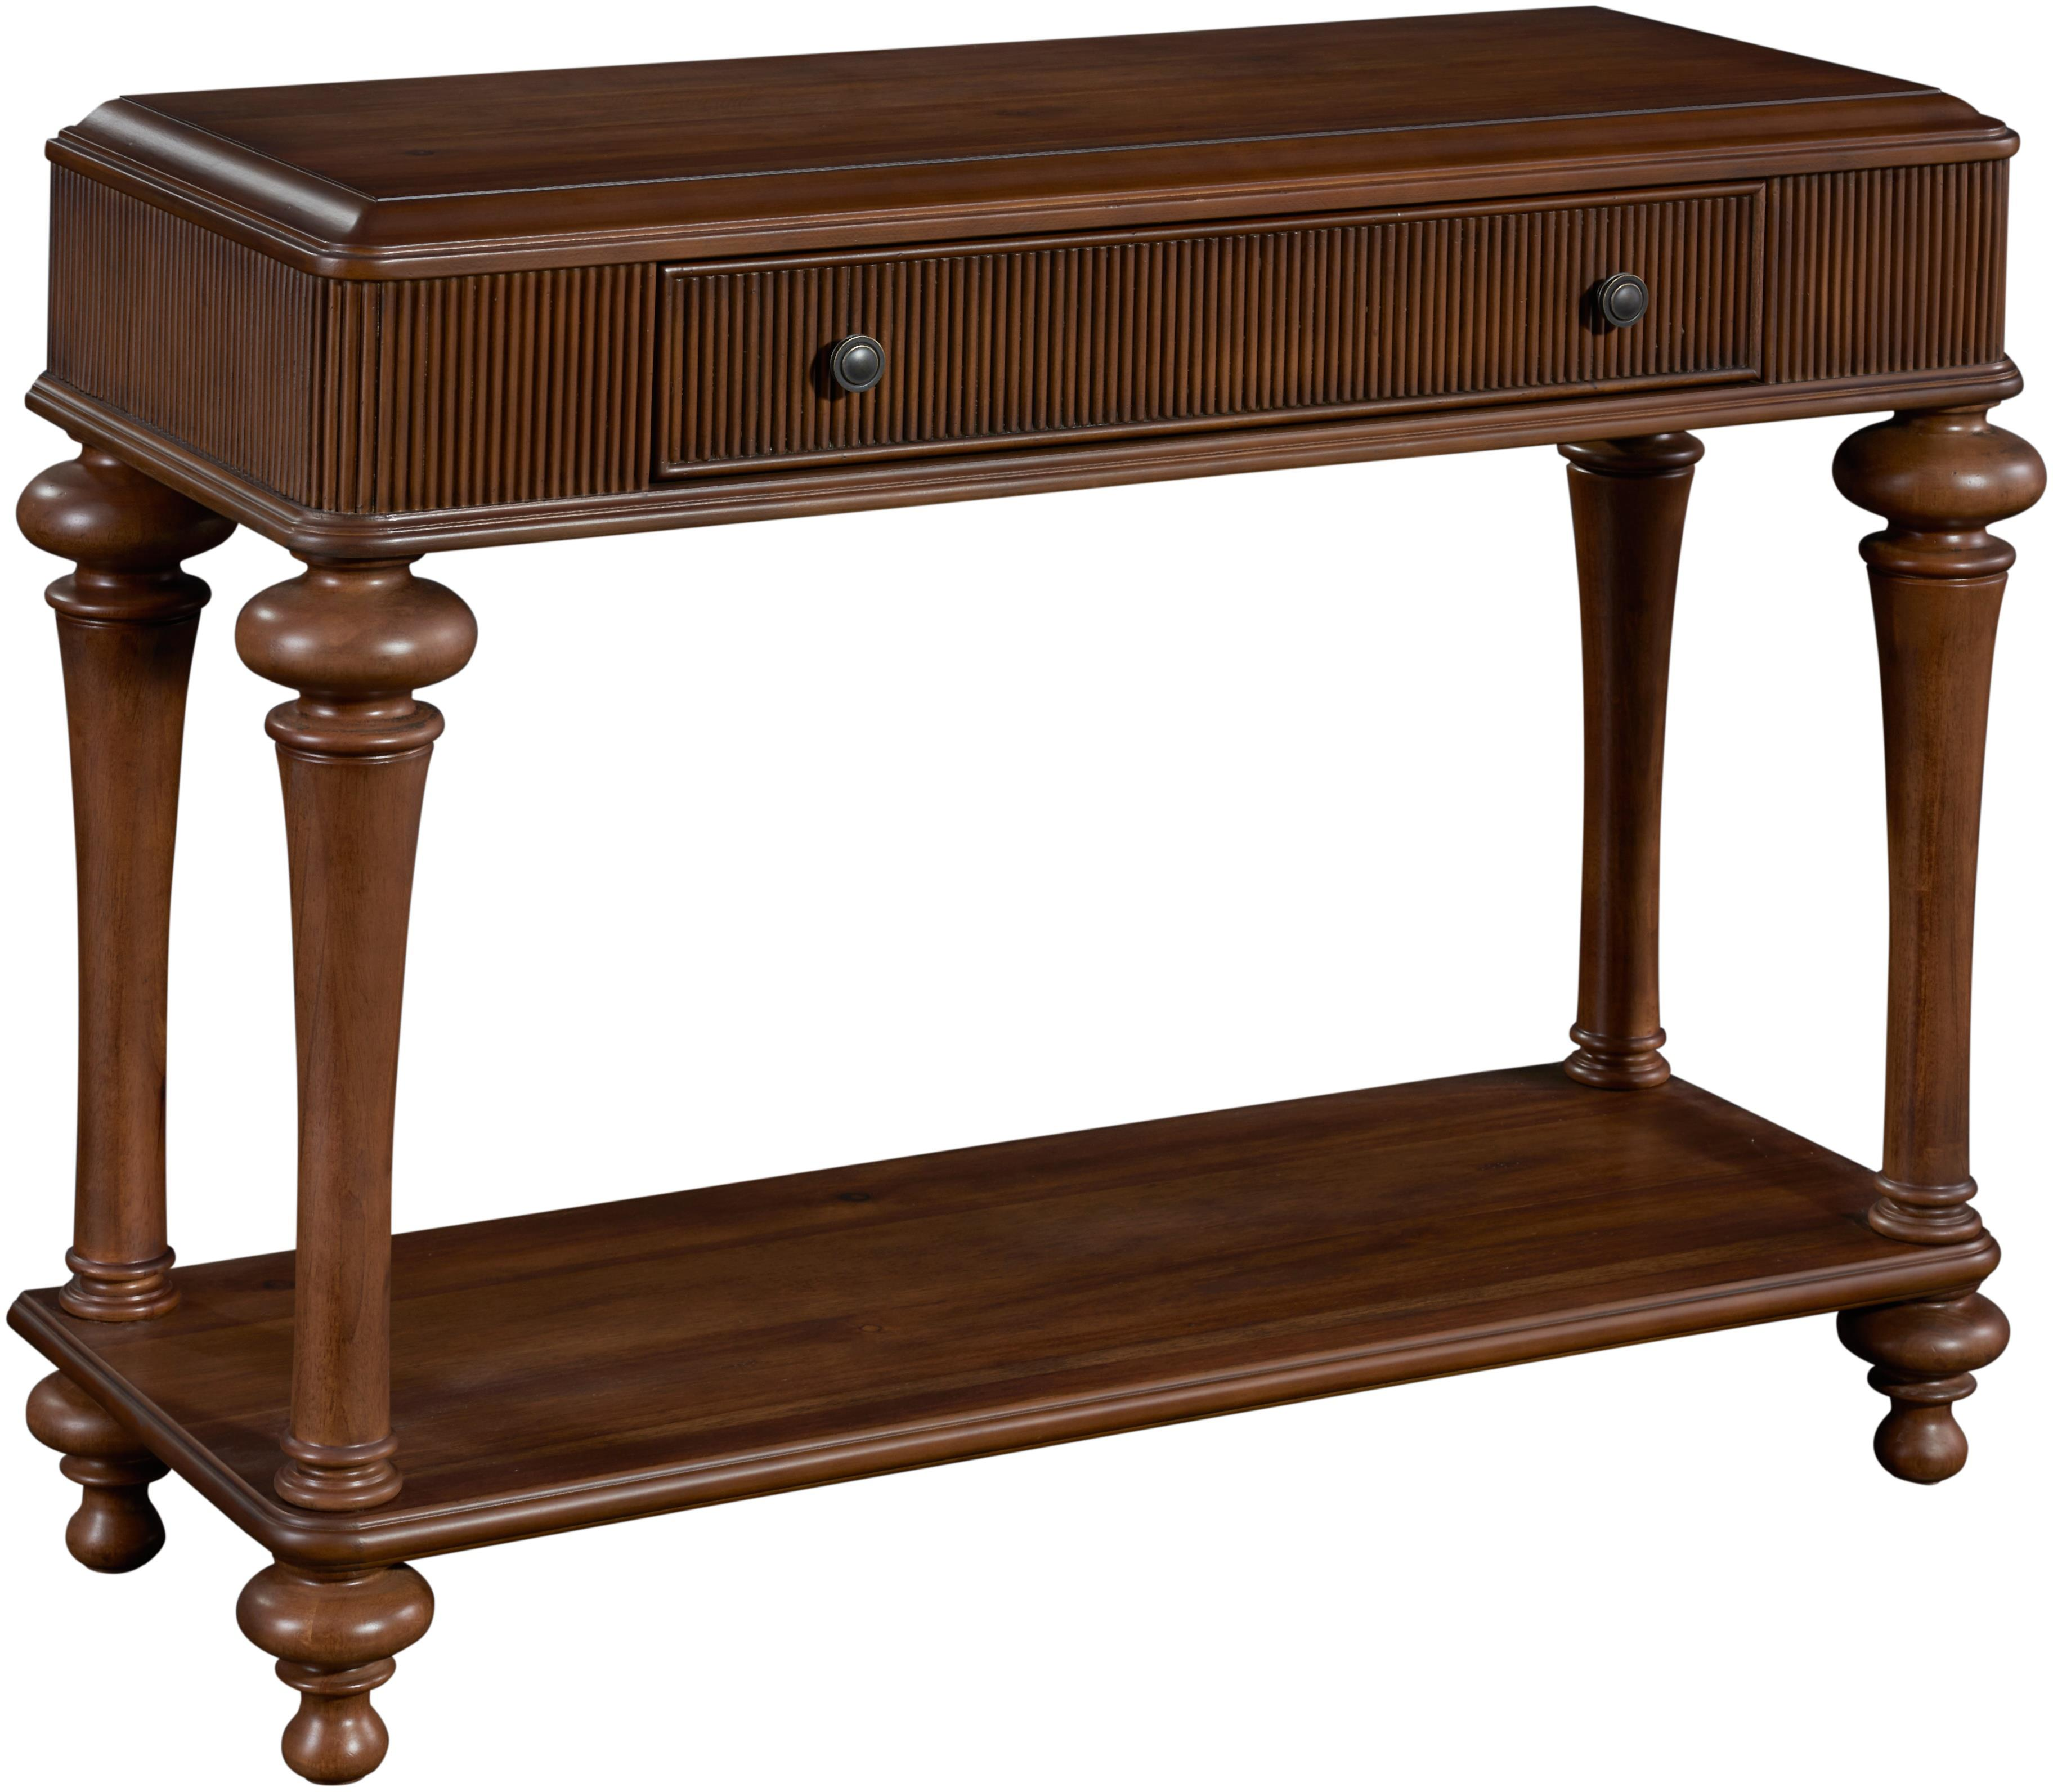 Broyhill Furniture Cascade Library Console Table - Item Number: 4940-009